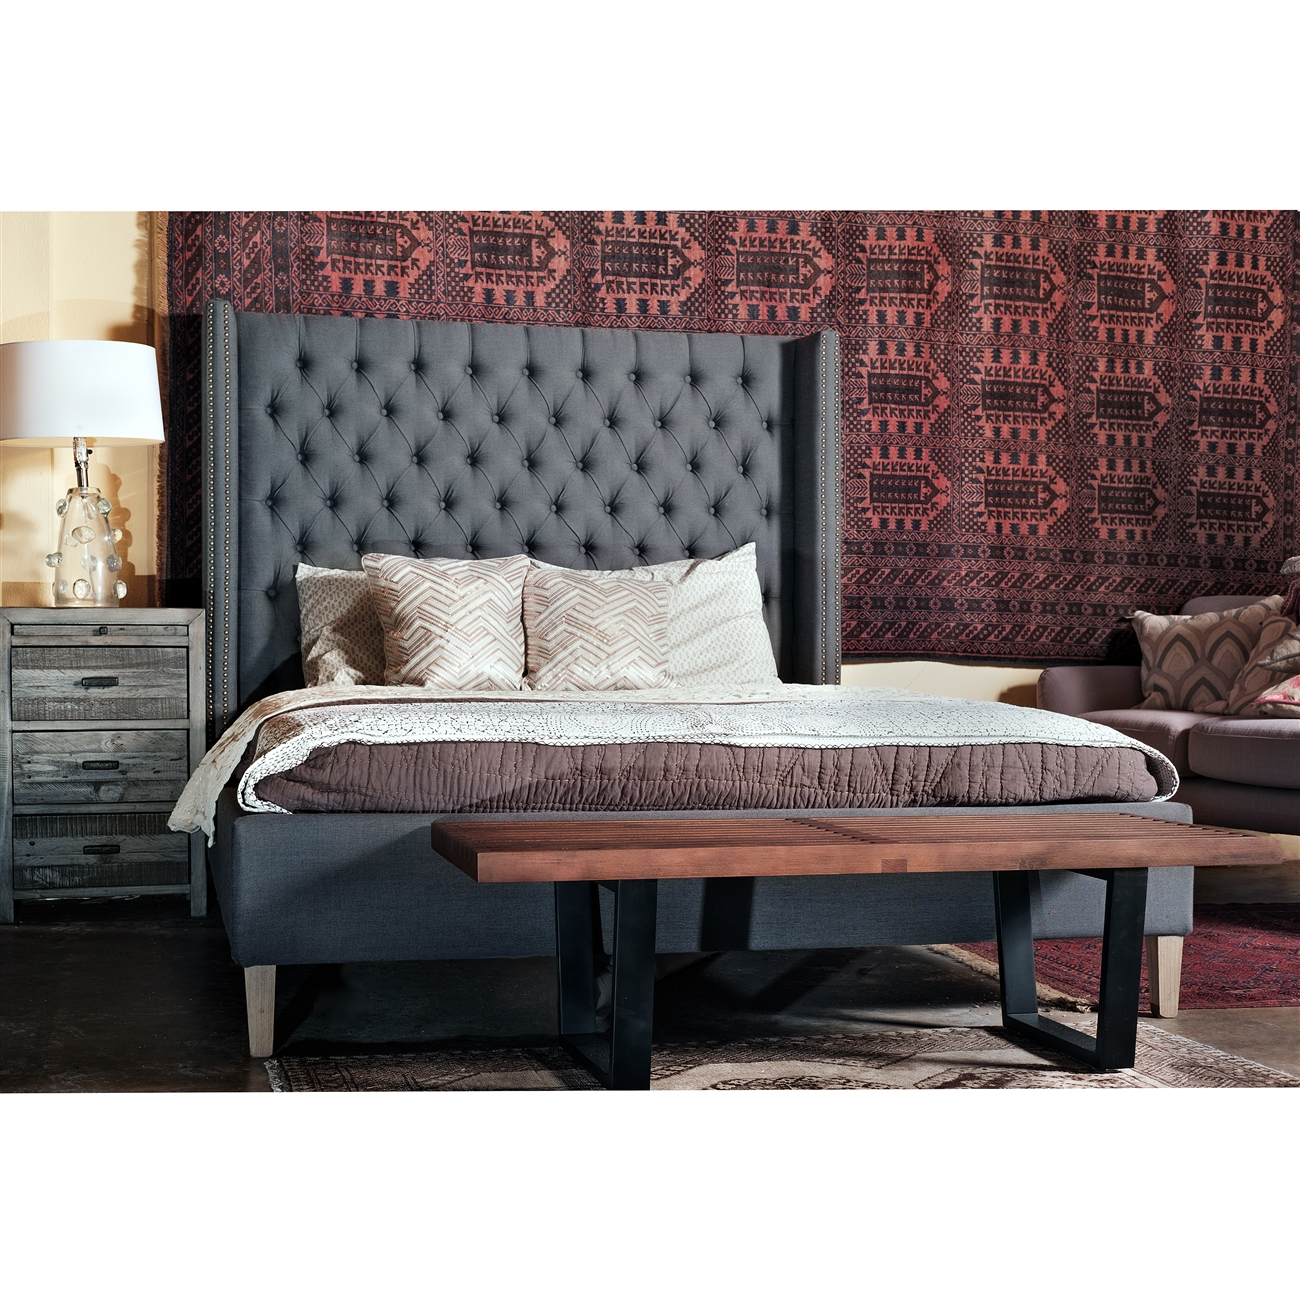 Ash Upholstered Queen Bed, The Khazana Home Austin Furniture Store